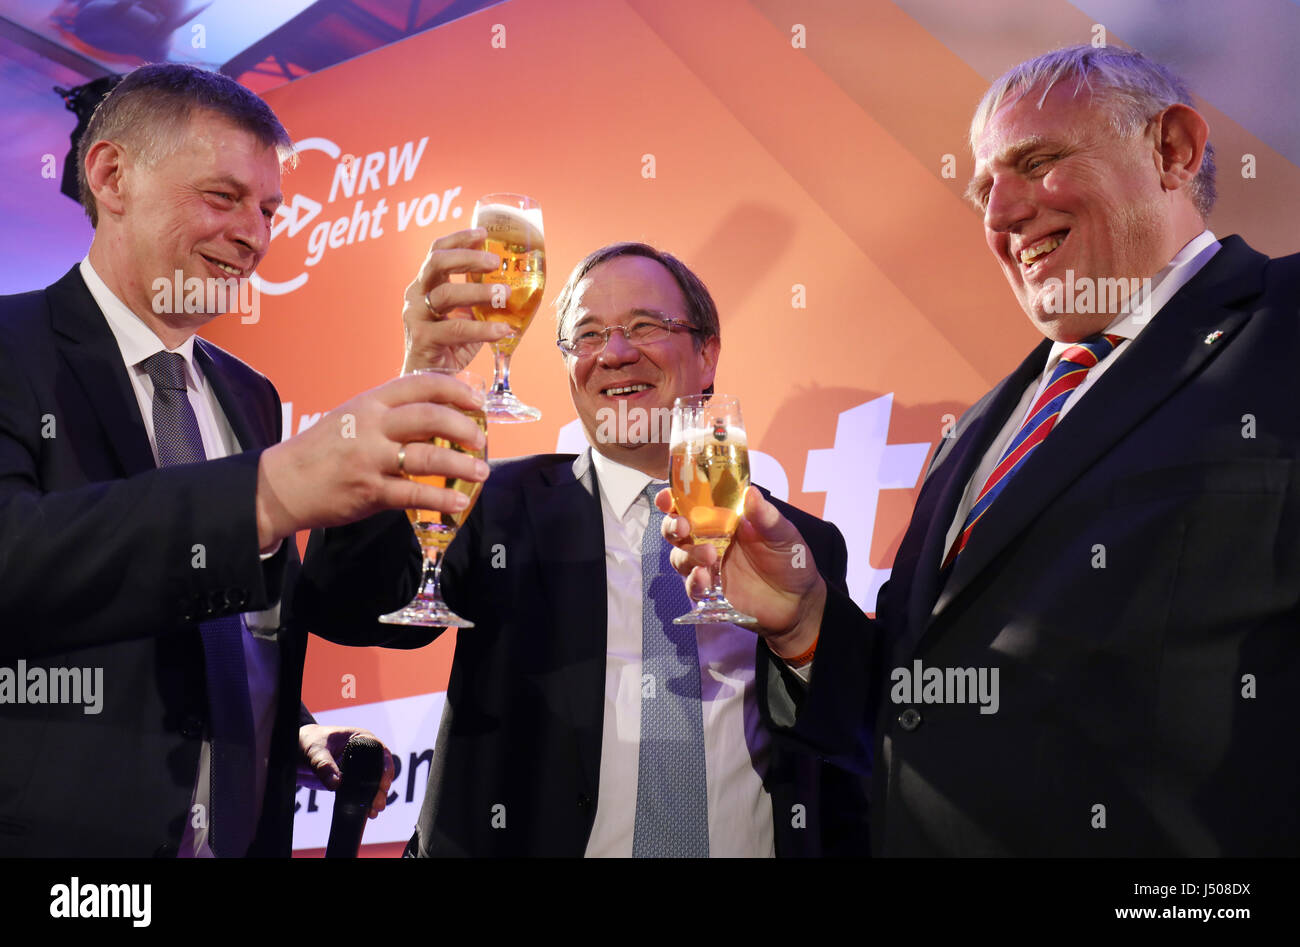 Duesseldorf, Germany. 14th May, 2017. The top candidate of the CDU, Armin Laschet celebrates the election results - Stock Image